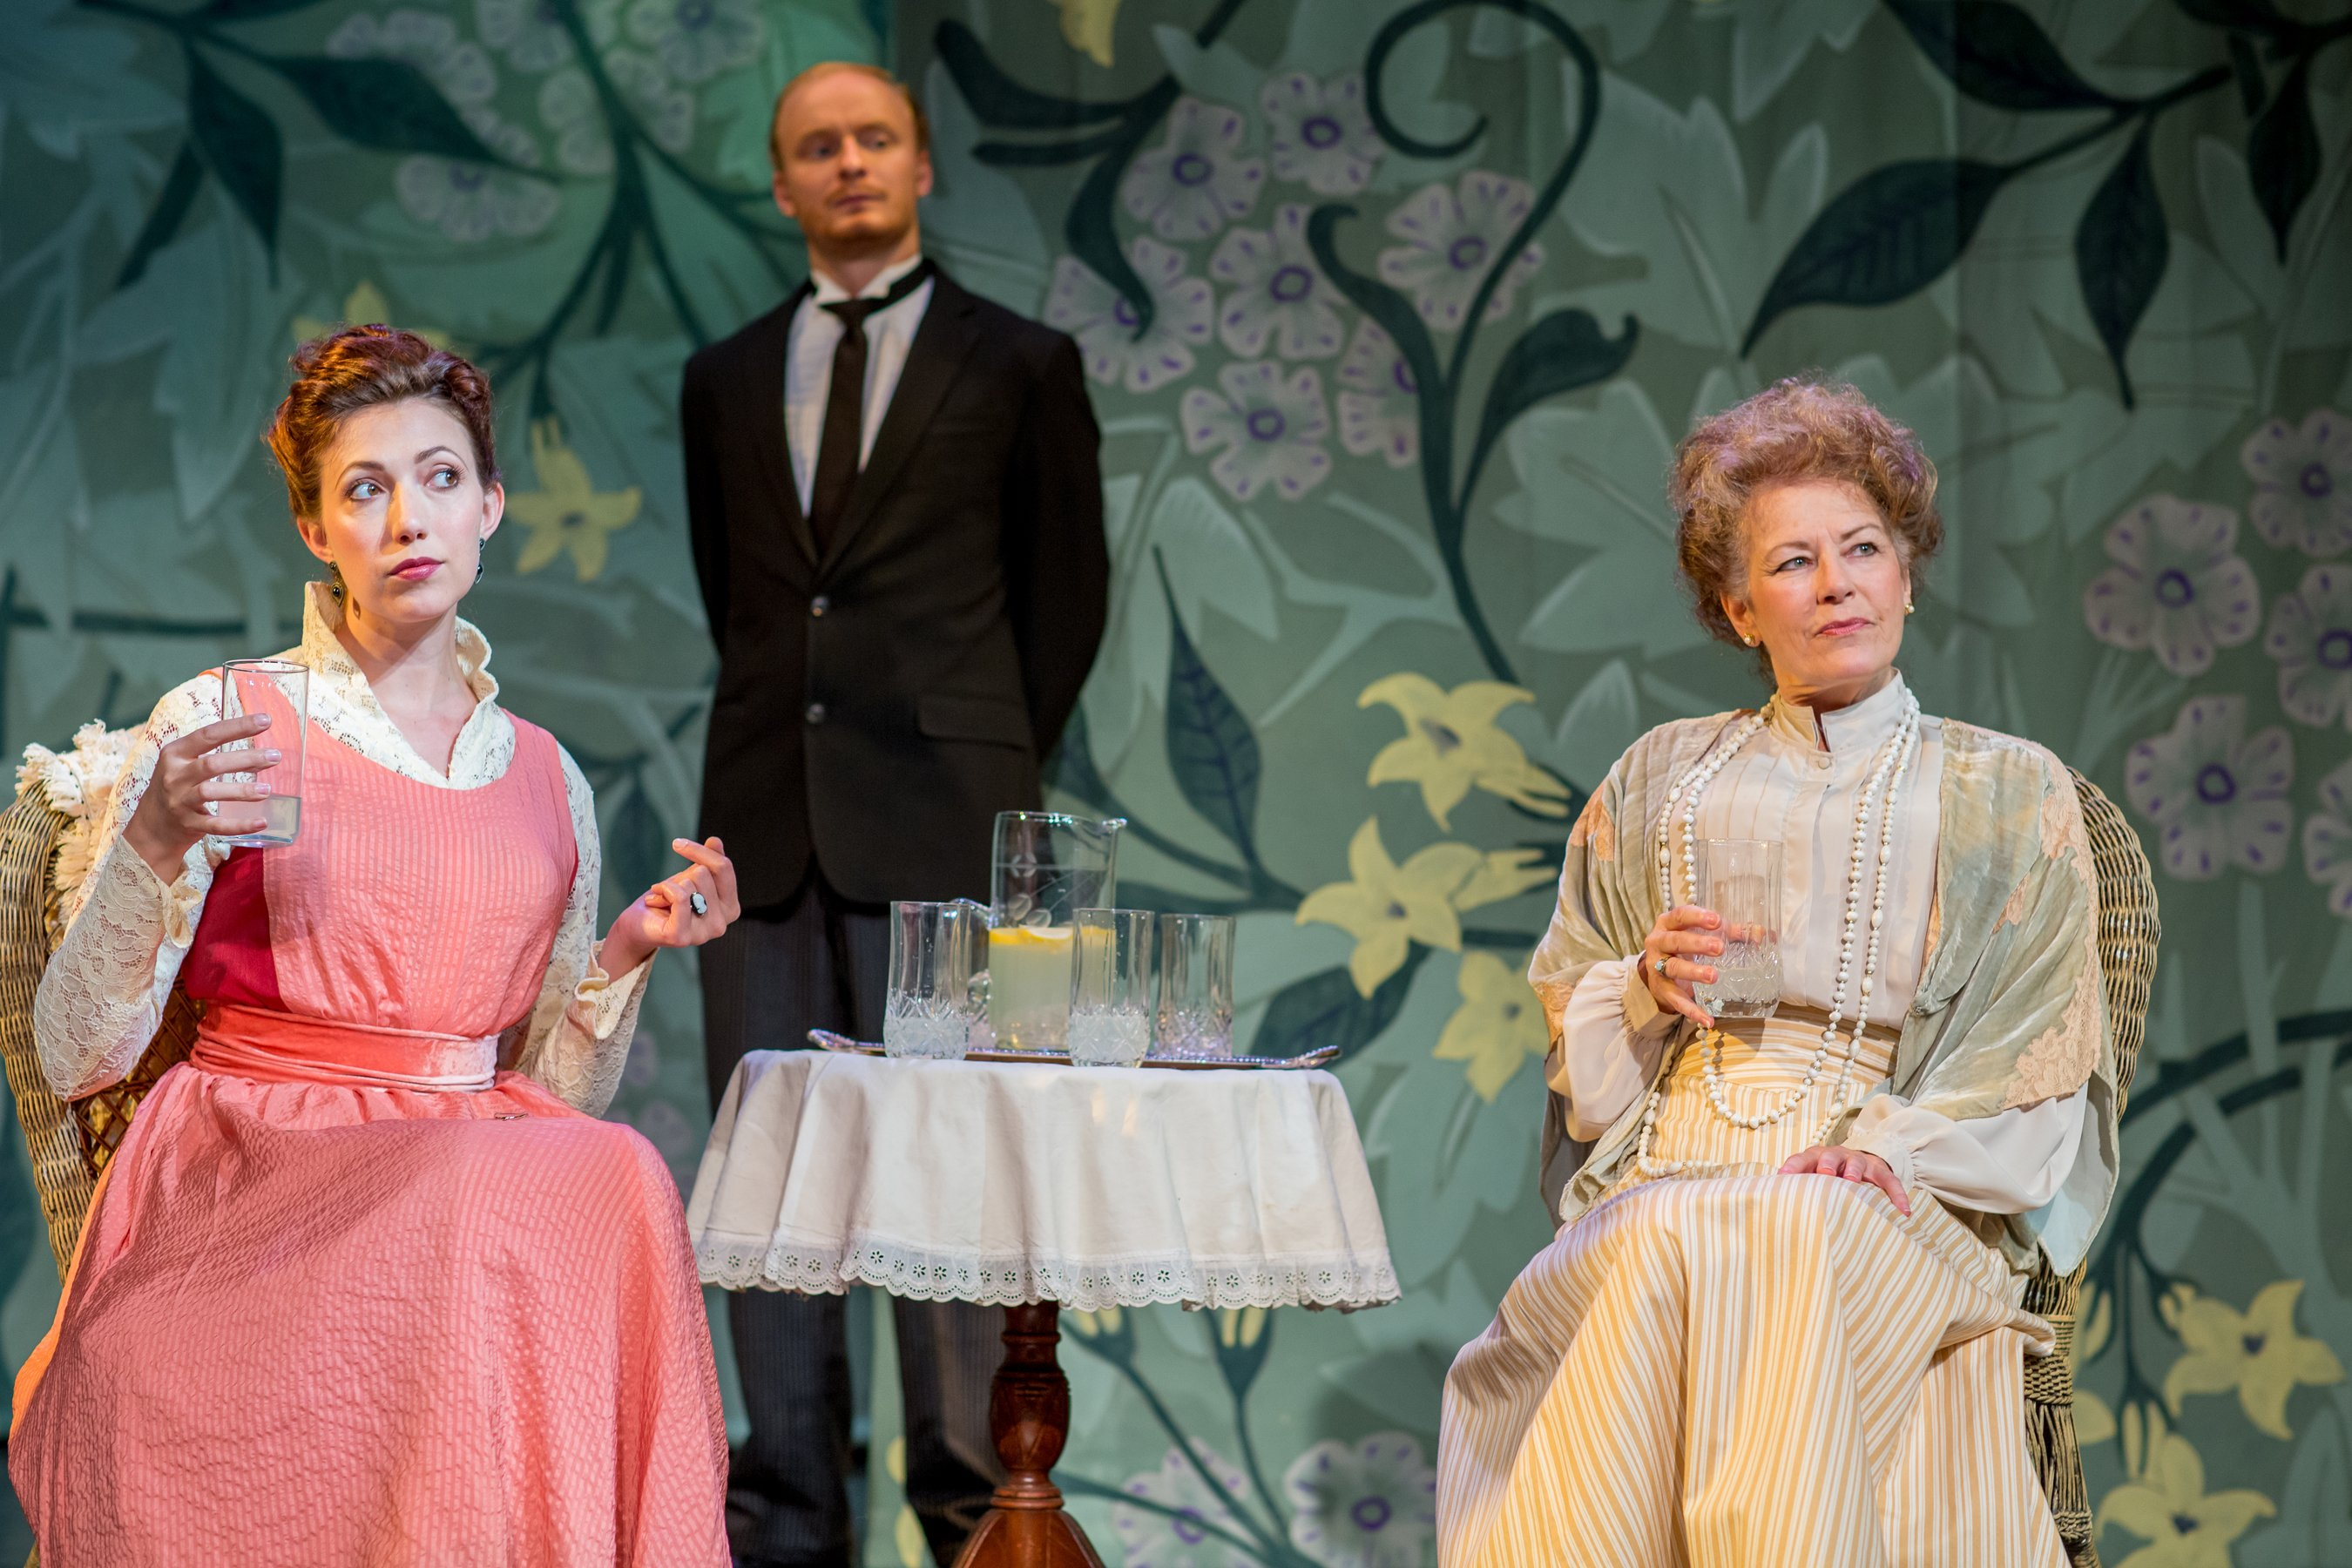 Lisa Woods as Mrs. Allonby, Turner Frankosky as Francis, and Janis Stevens as Lady Hunstanton from Theater at Monmouth's 2014 production of A Woman of No Importance. Directed by Will Rhys.